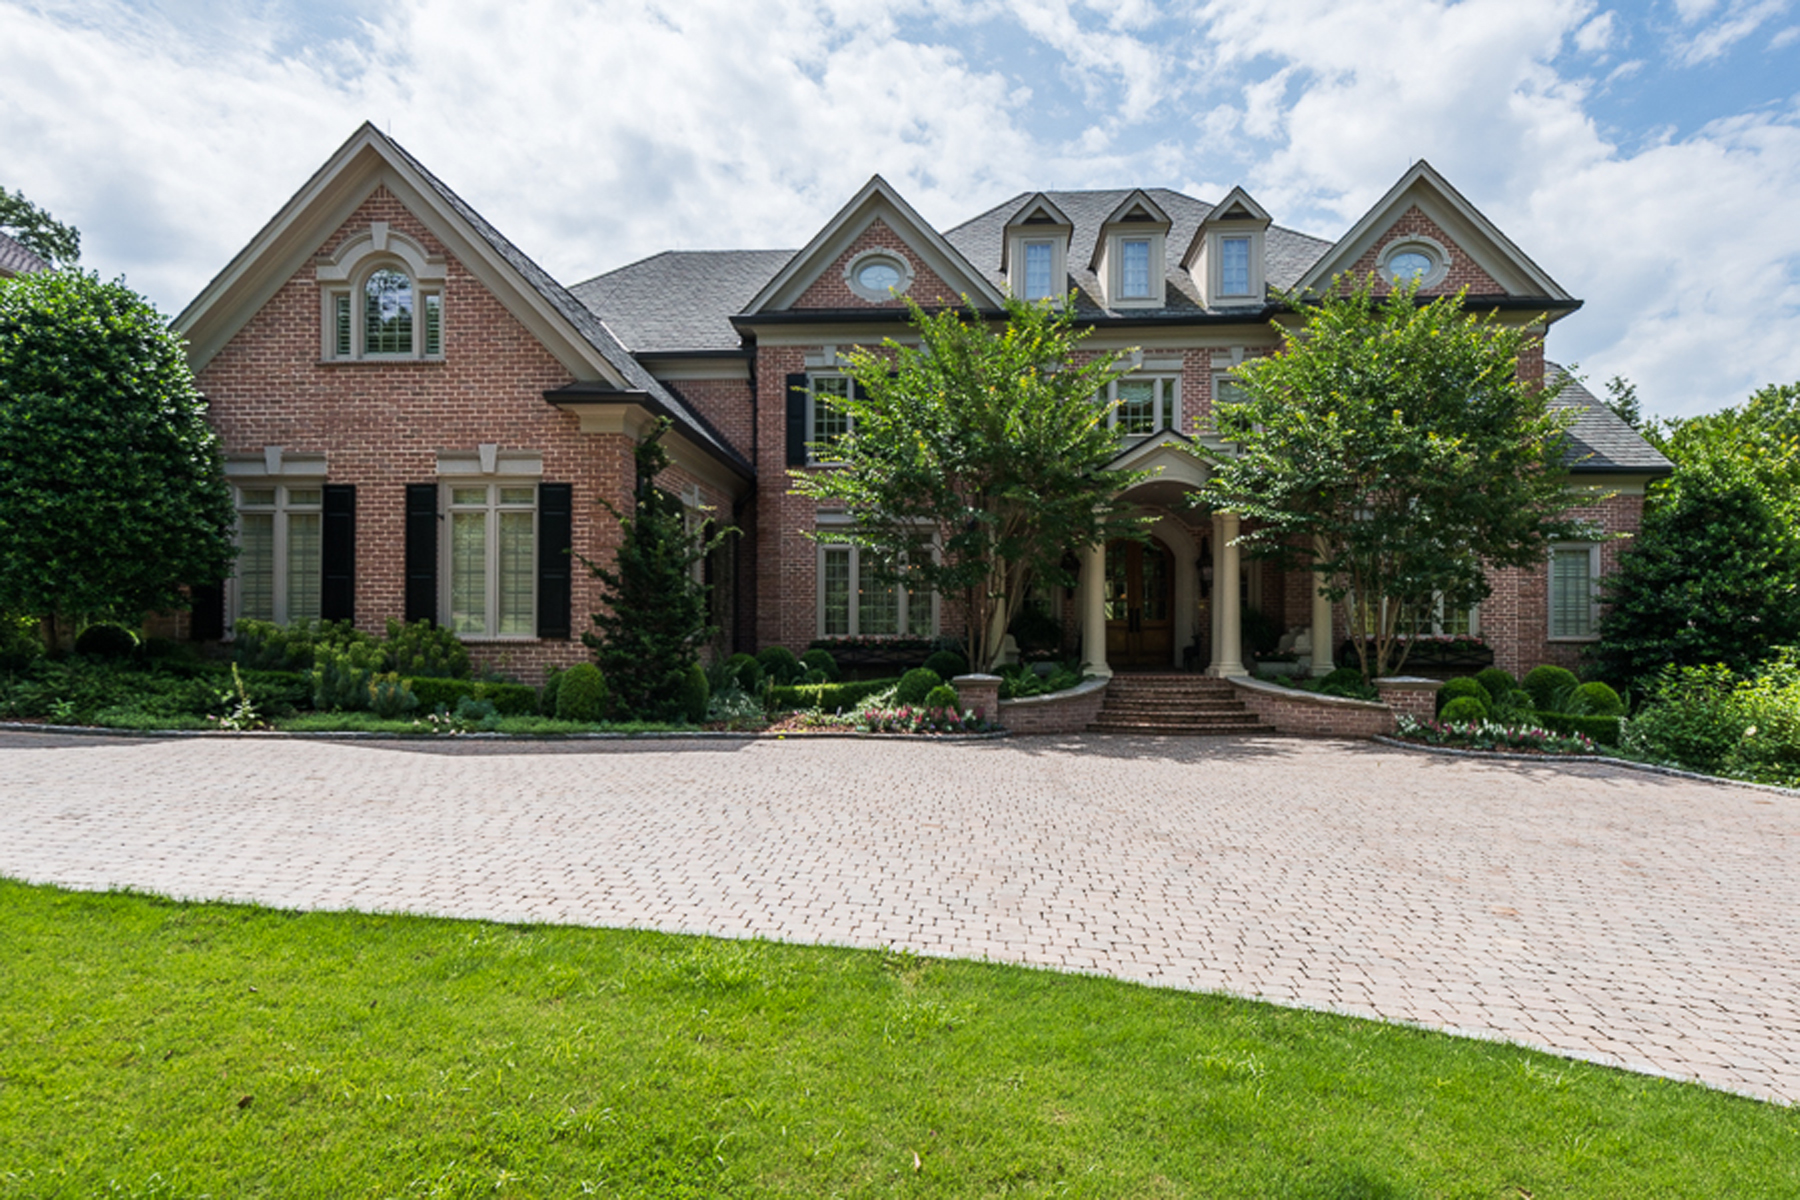 Single Family Home for Active at A Masterpiece In Johns Creek Most Prestigious Gated Golf Community 490 Covington Cove Alpharetta, Georgia 30022 United States